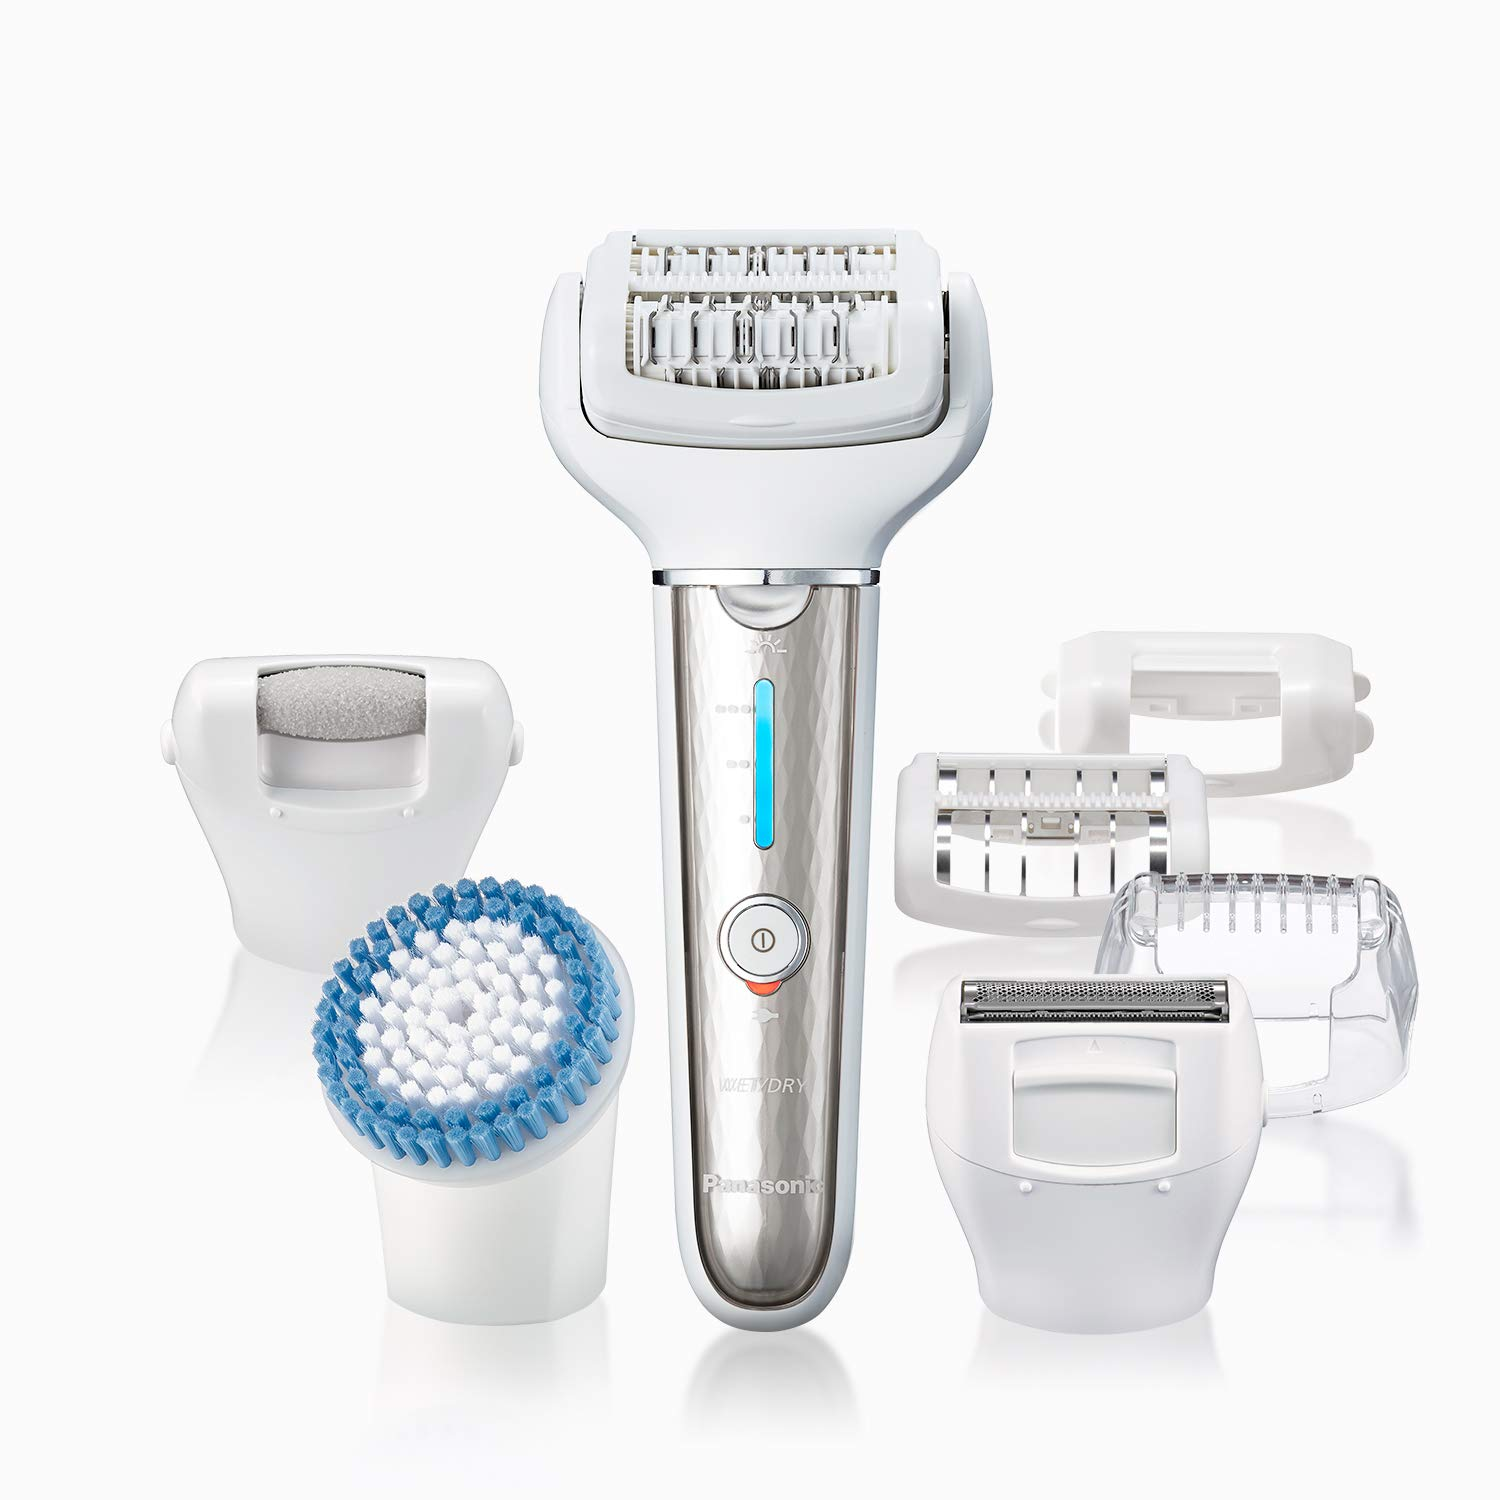 Panasonic Epilator for Women - Premium Cordless Wet/Dry Epilator & Shaver with 7 Attachments achieves Gentle Hair Removal & Full Body Spa Care at Home - ES-EL9A-S (Silver)